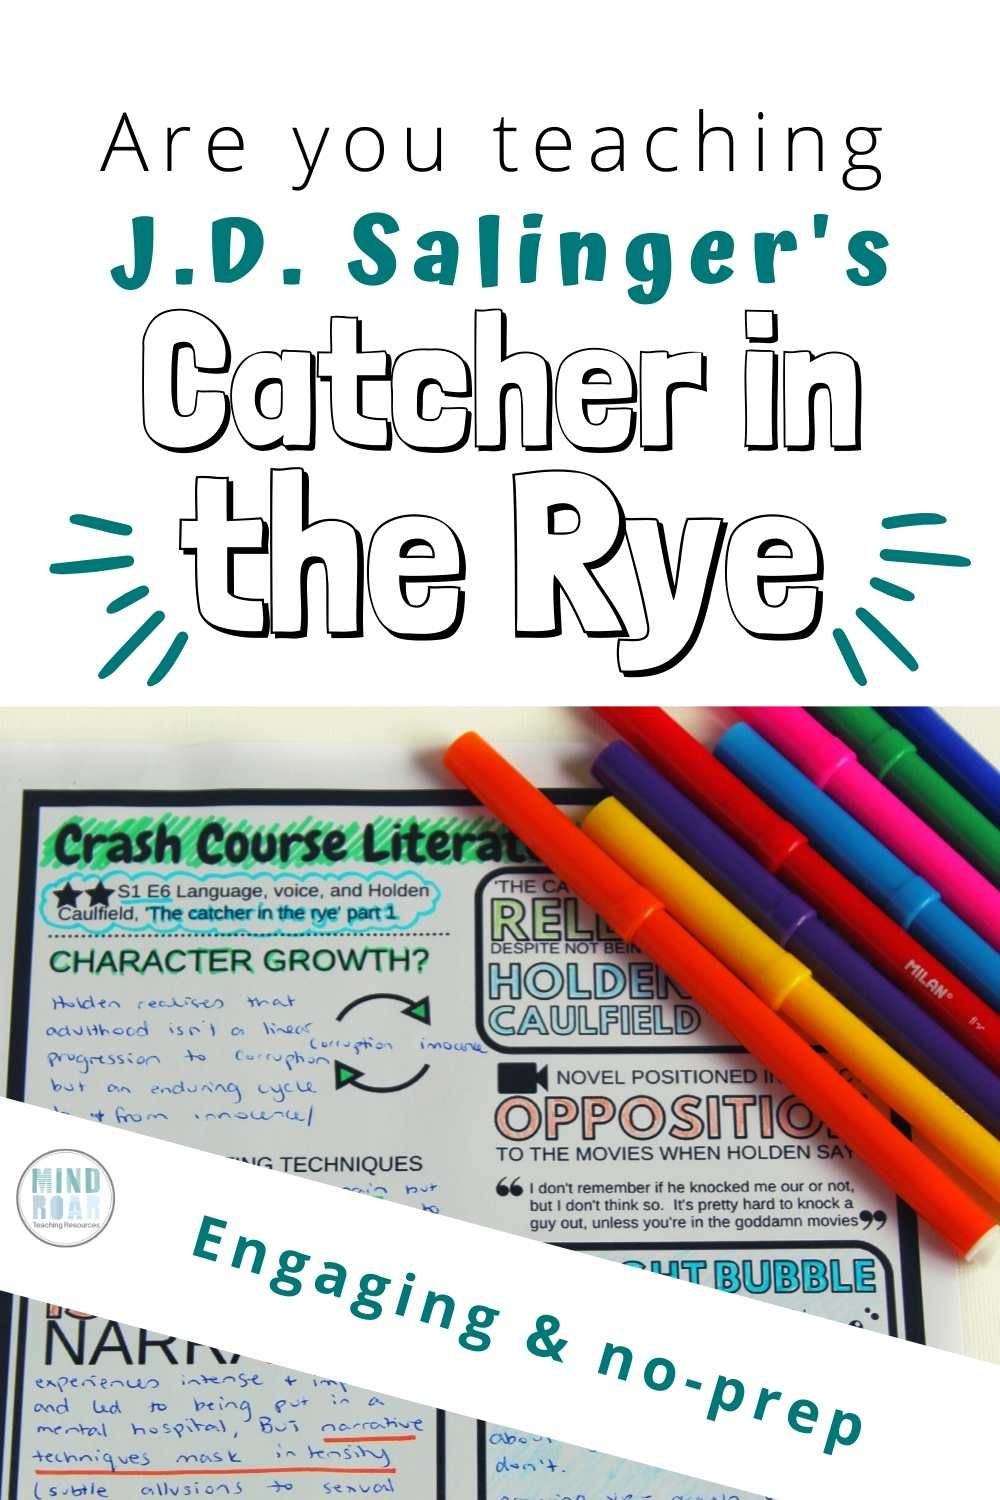 Struggling To Engage Your Students In J D Salinger S Catcher In The Rye Use Our Engaging No Prep Vi In 2020 Catcher In The Rye Crash Course Literature Crash Course